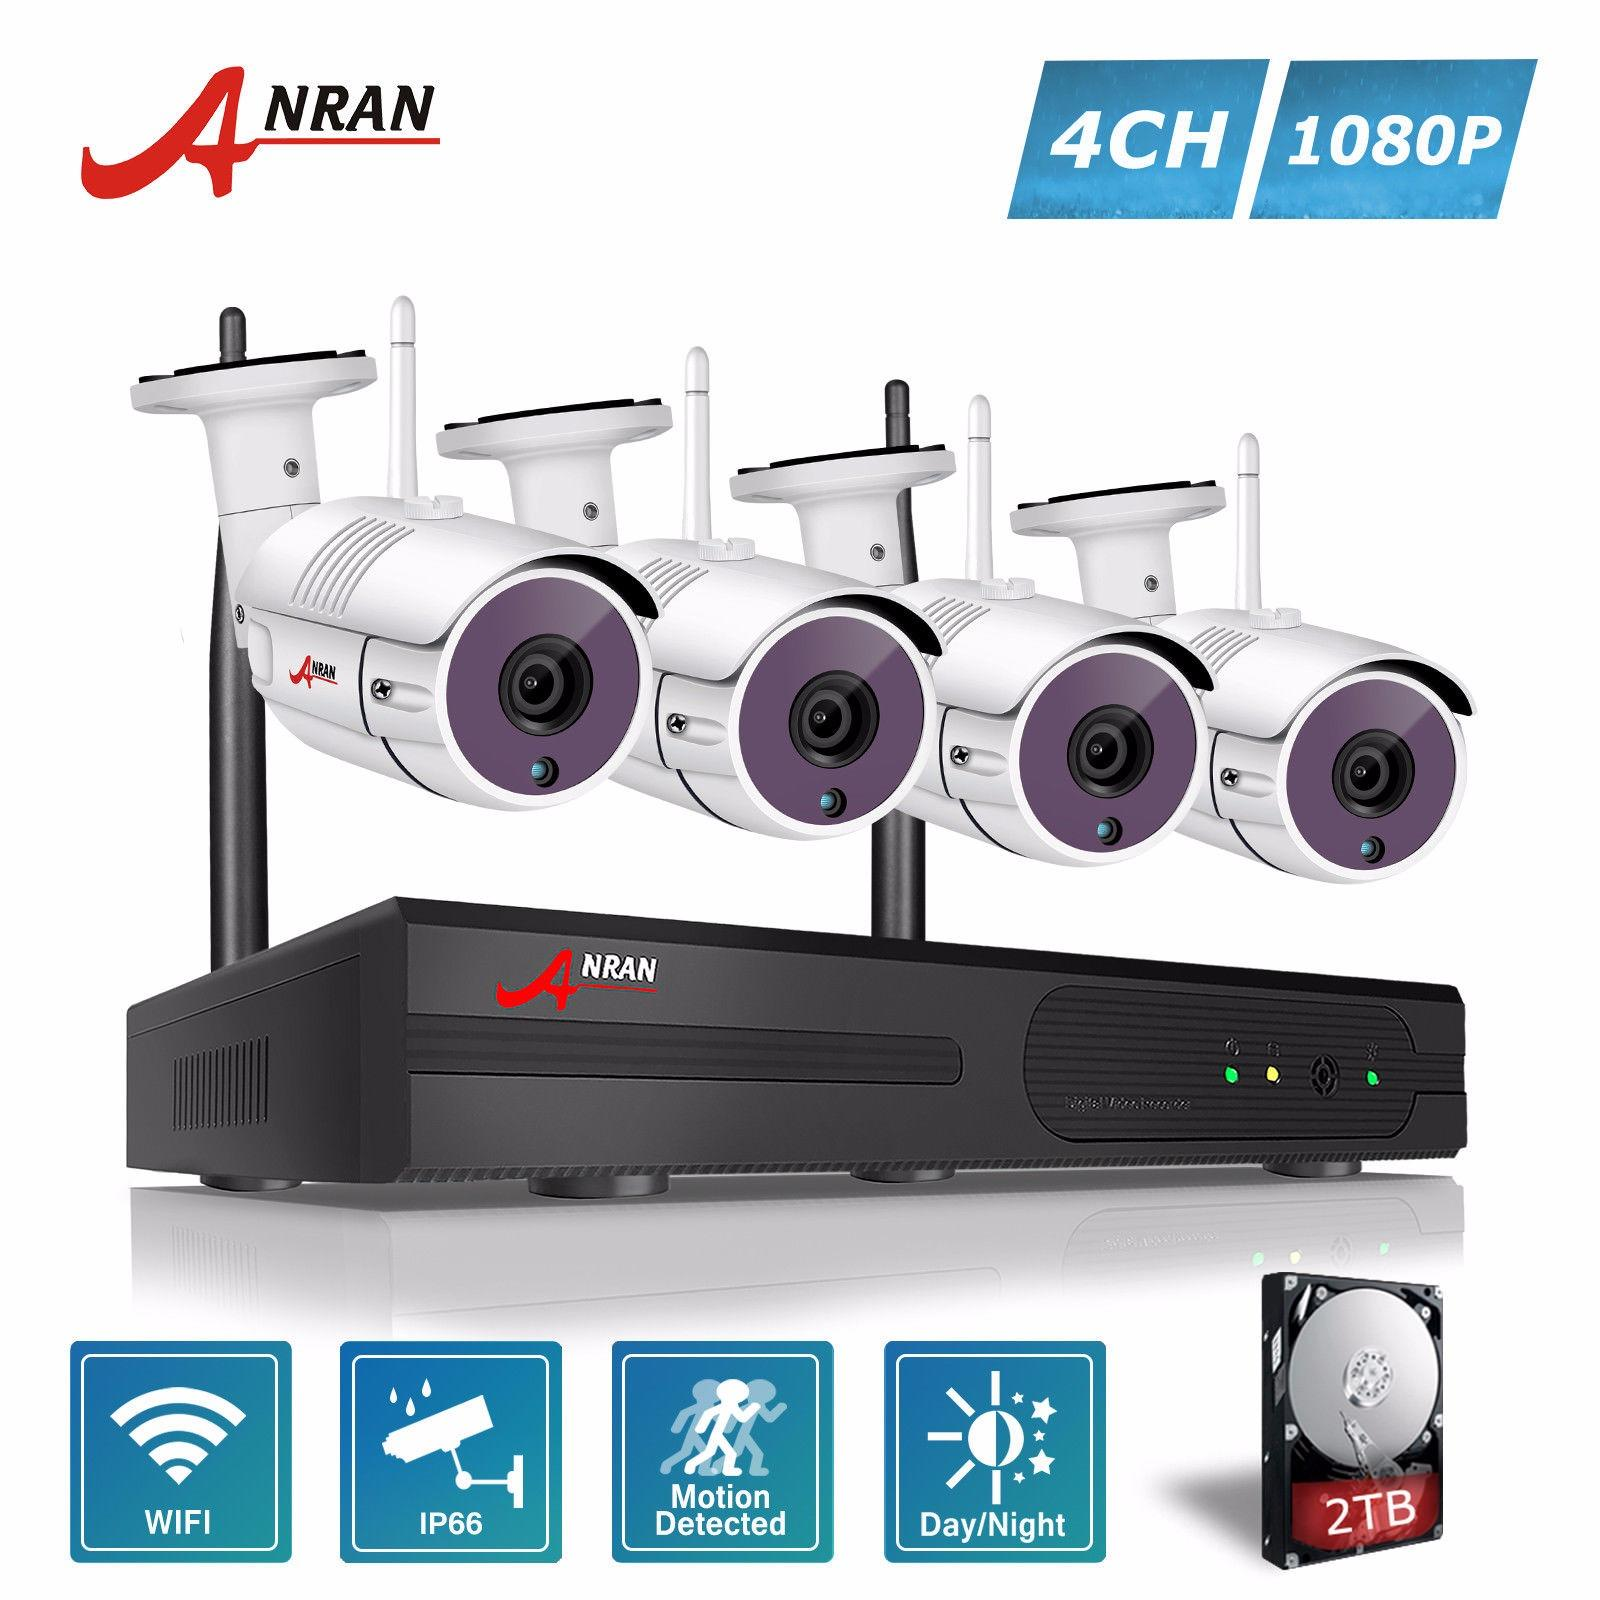 Beli Anran 4Ch Wireless Nvr Cctv Kit P2P 1080P Hd Outdoor Wifi Mini Ip Camera 36Ir Security Surveillance System Dengan Kartu Kredit